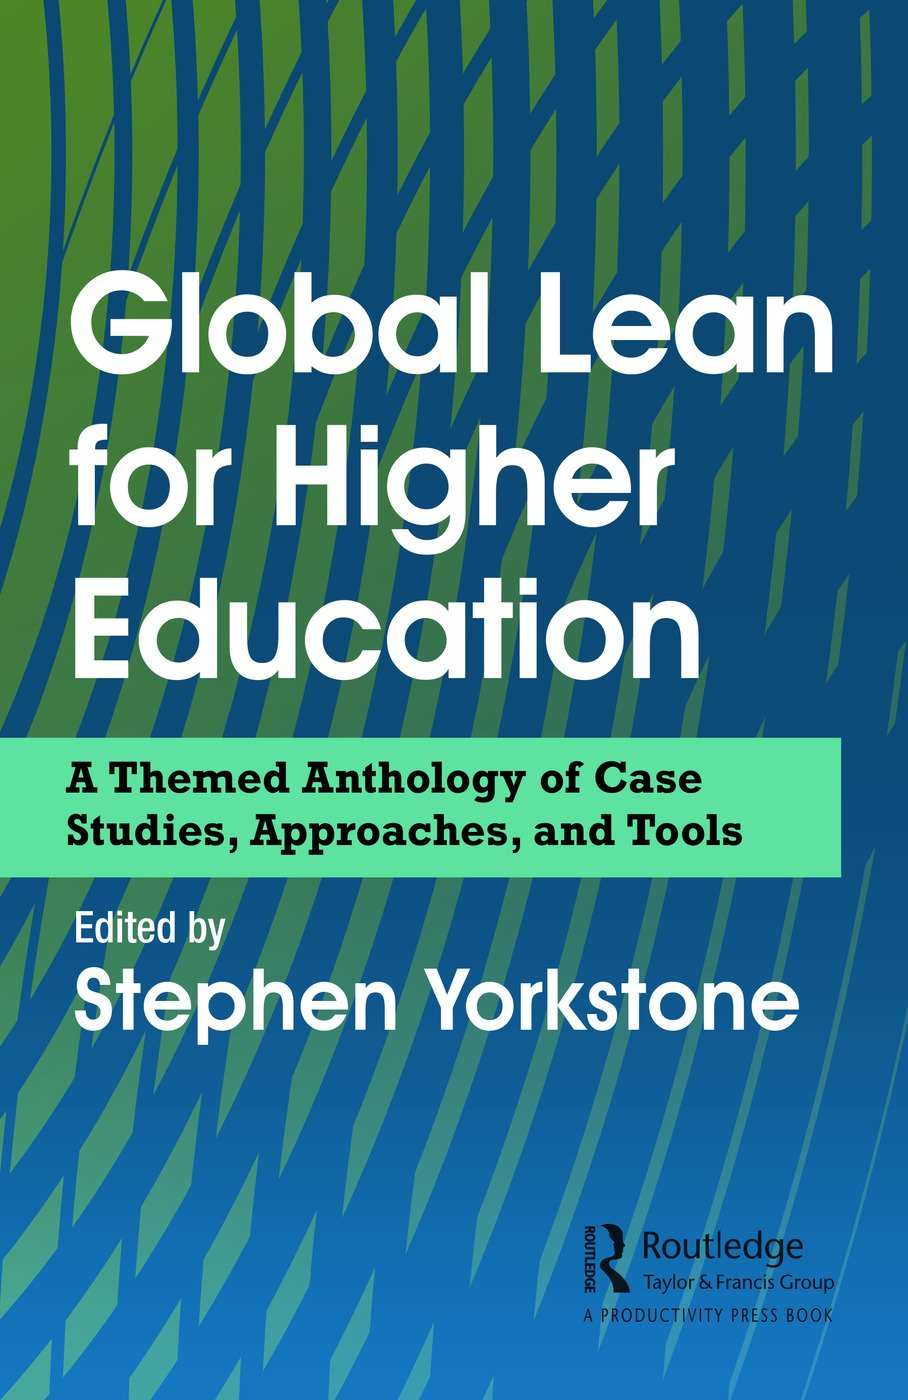 Global Lean for Higher Education: A Themed Anthology of Case Studies, Approaches, and Tools book cover